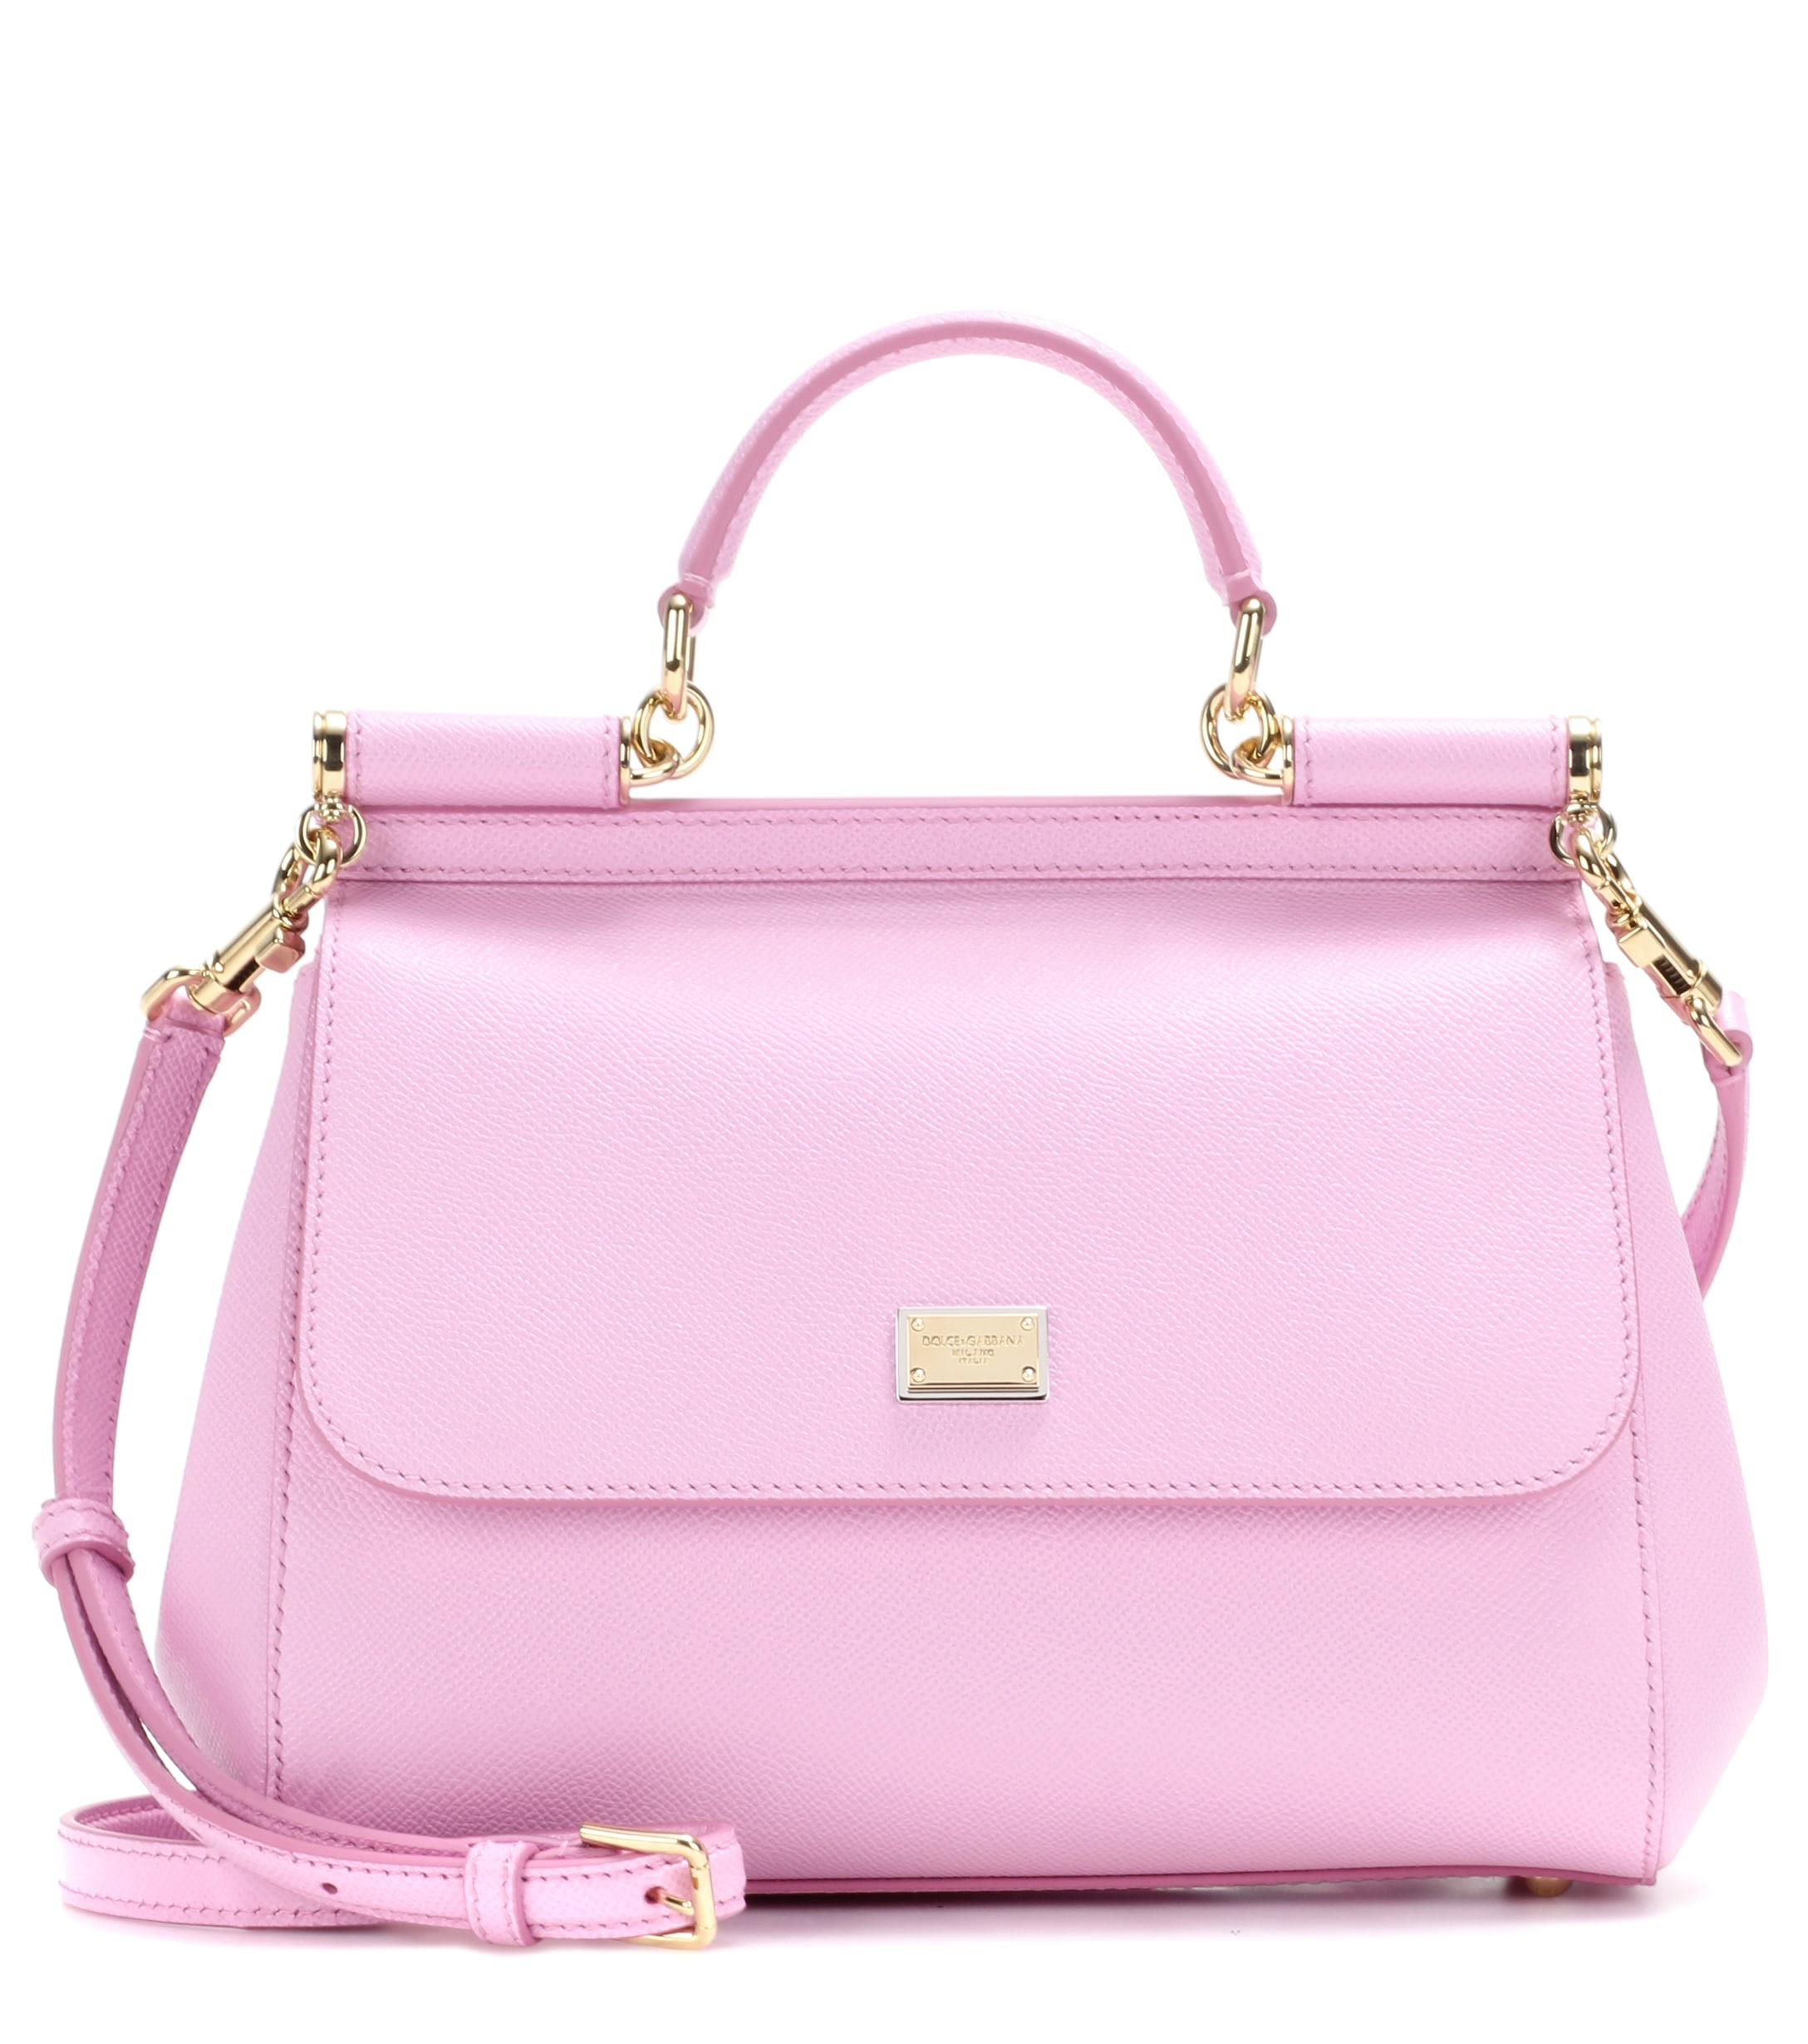 965da27575 Lyst - Dolce   Gabbana Sicily Medium Leather Shoulder Bag in Pink